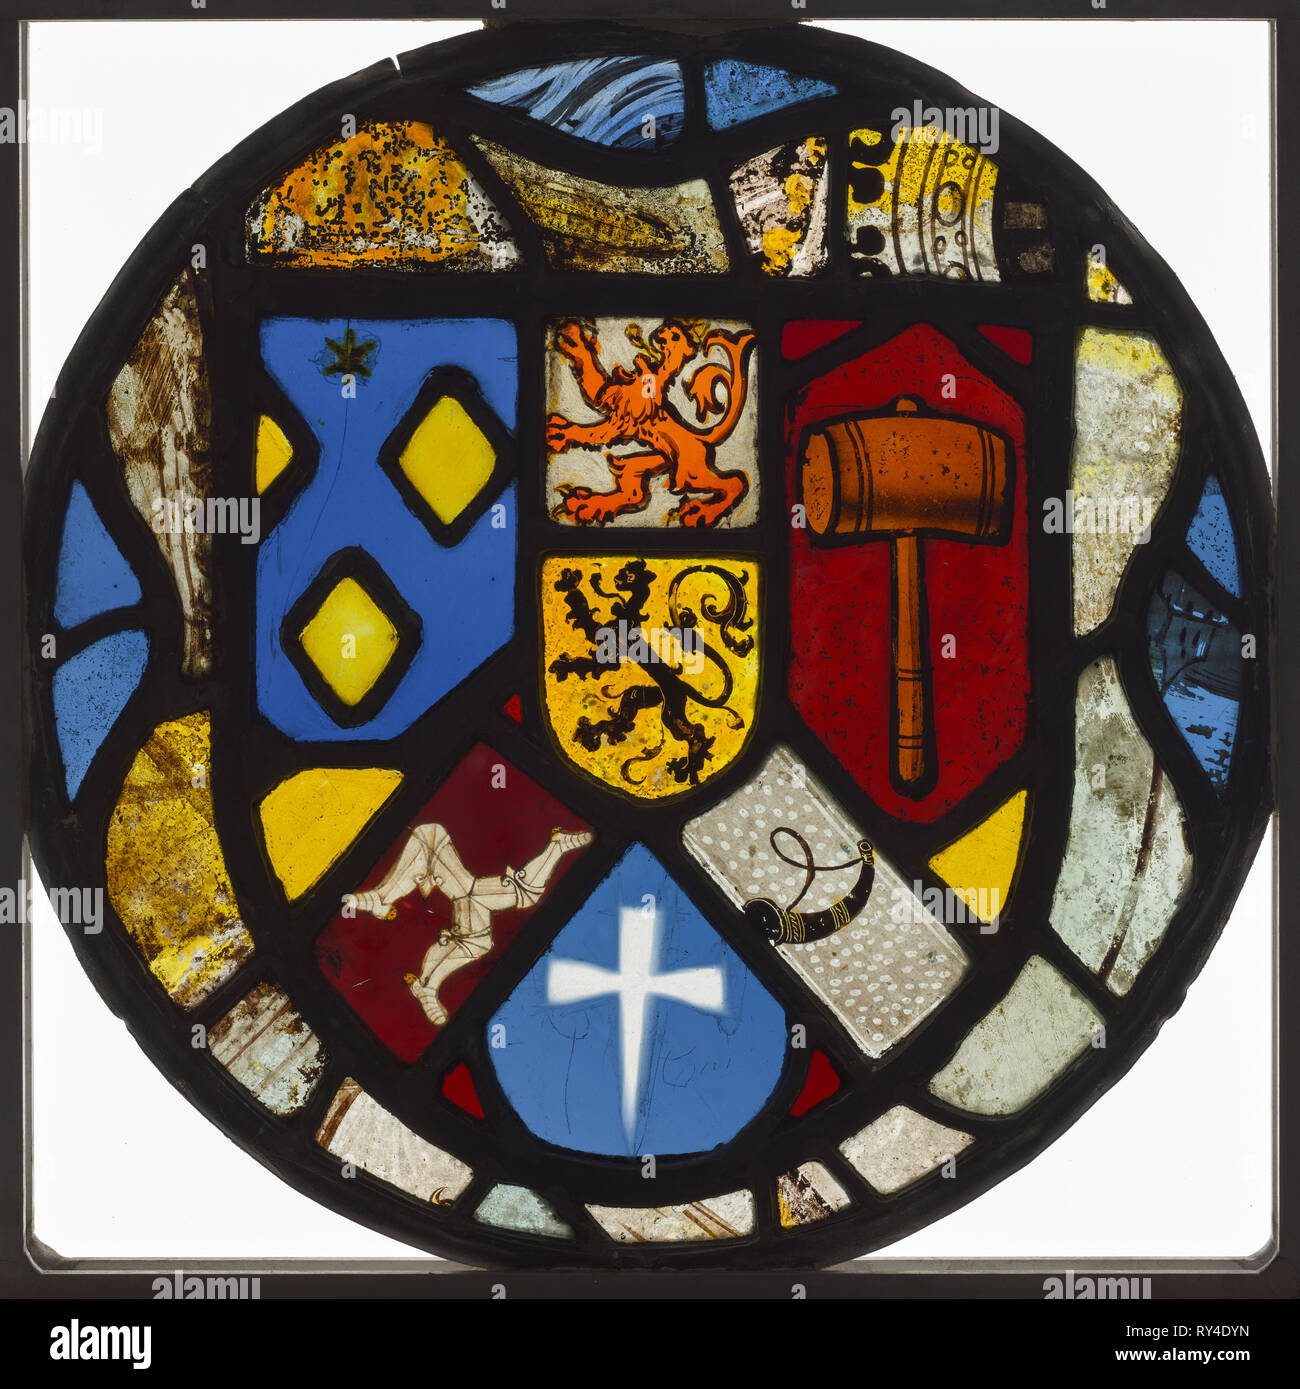 Heraldic Roundel, 1500s. England, 16th century. Pot-metal and white glass, silver stain; diameter: 27.7 cm (10 7/8 in - Stock Image